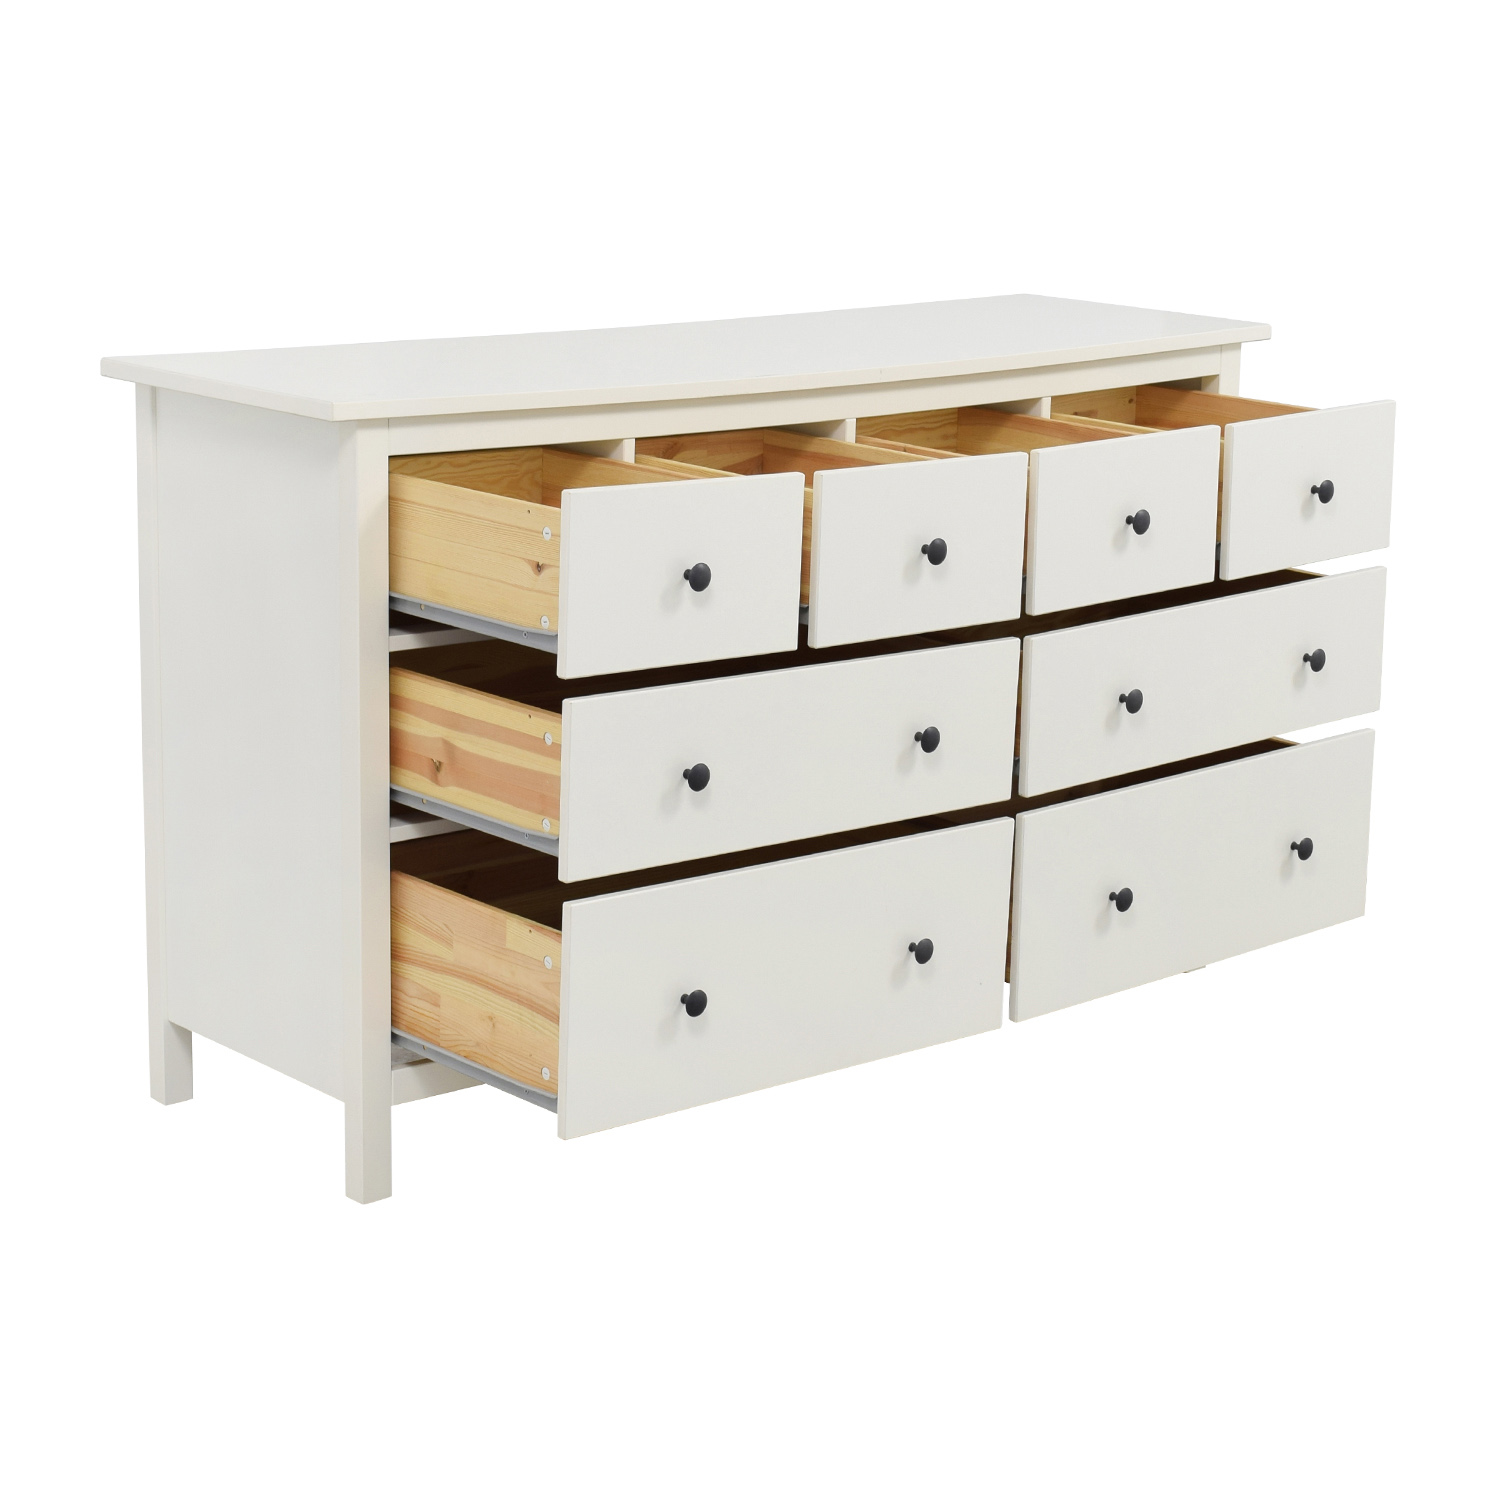 43 off ikea ikea hemnes eight drawer dresser storage for Ikea comodino hemnes